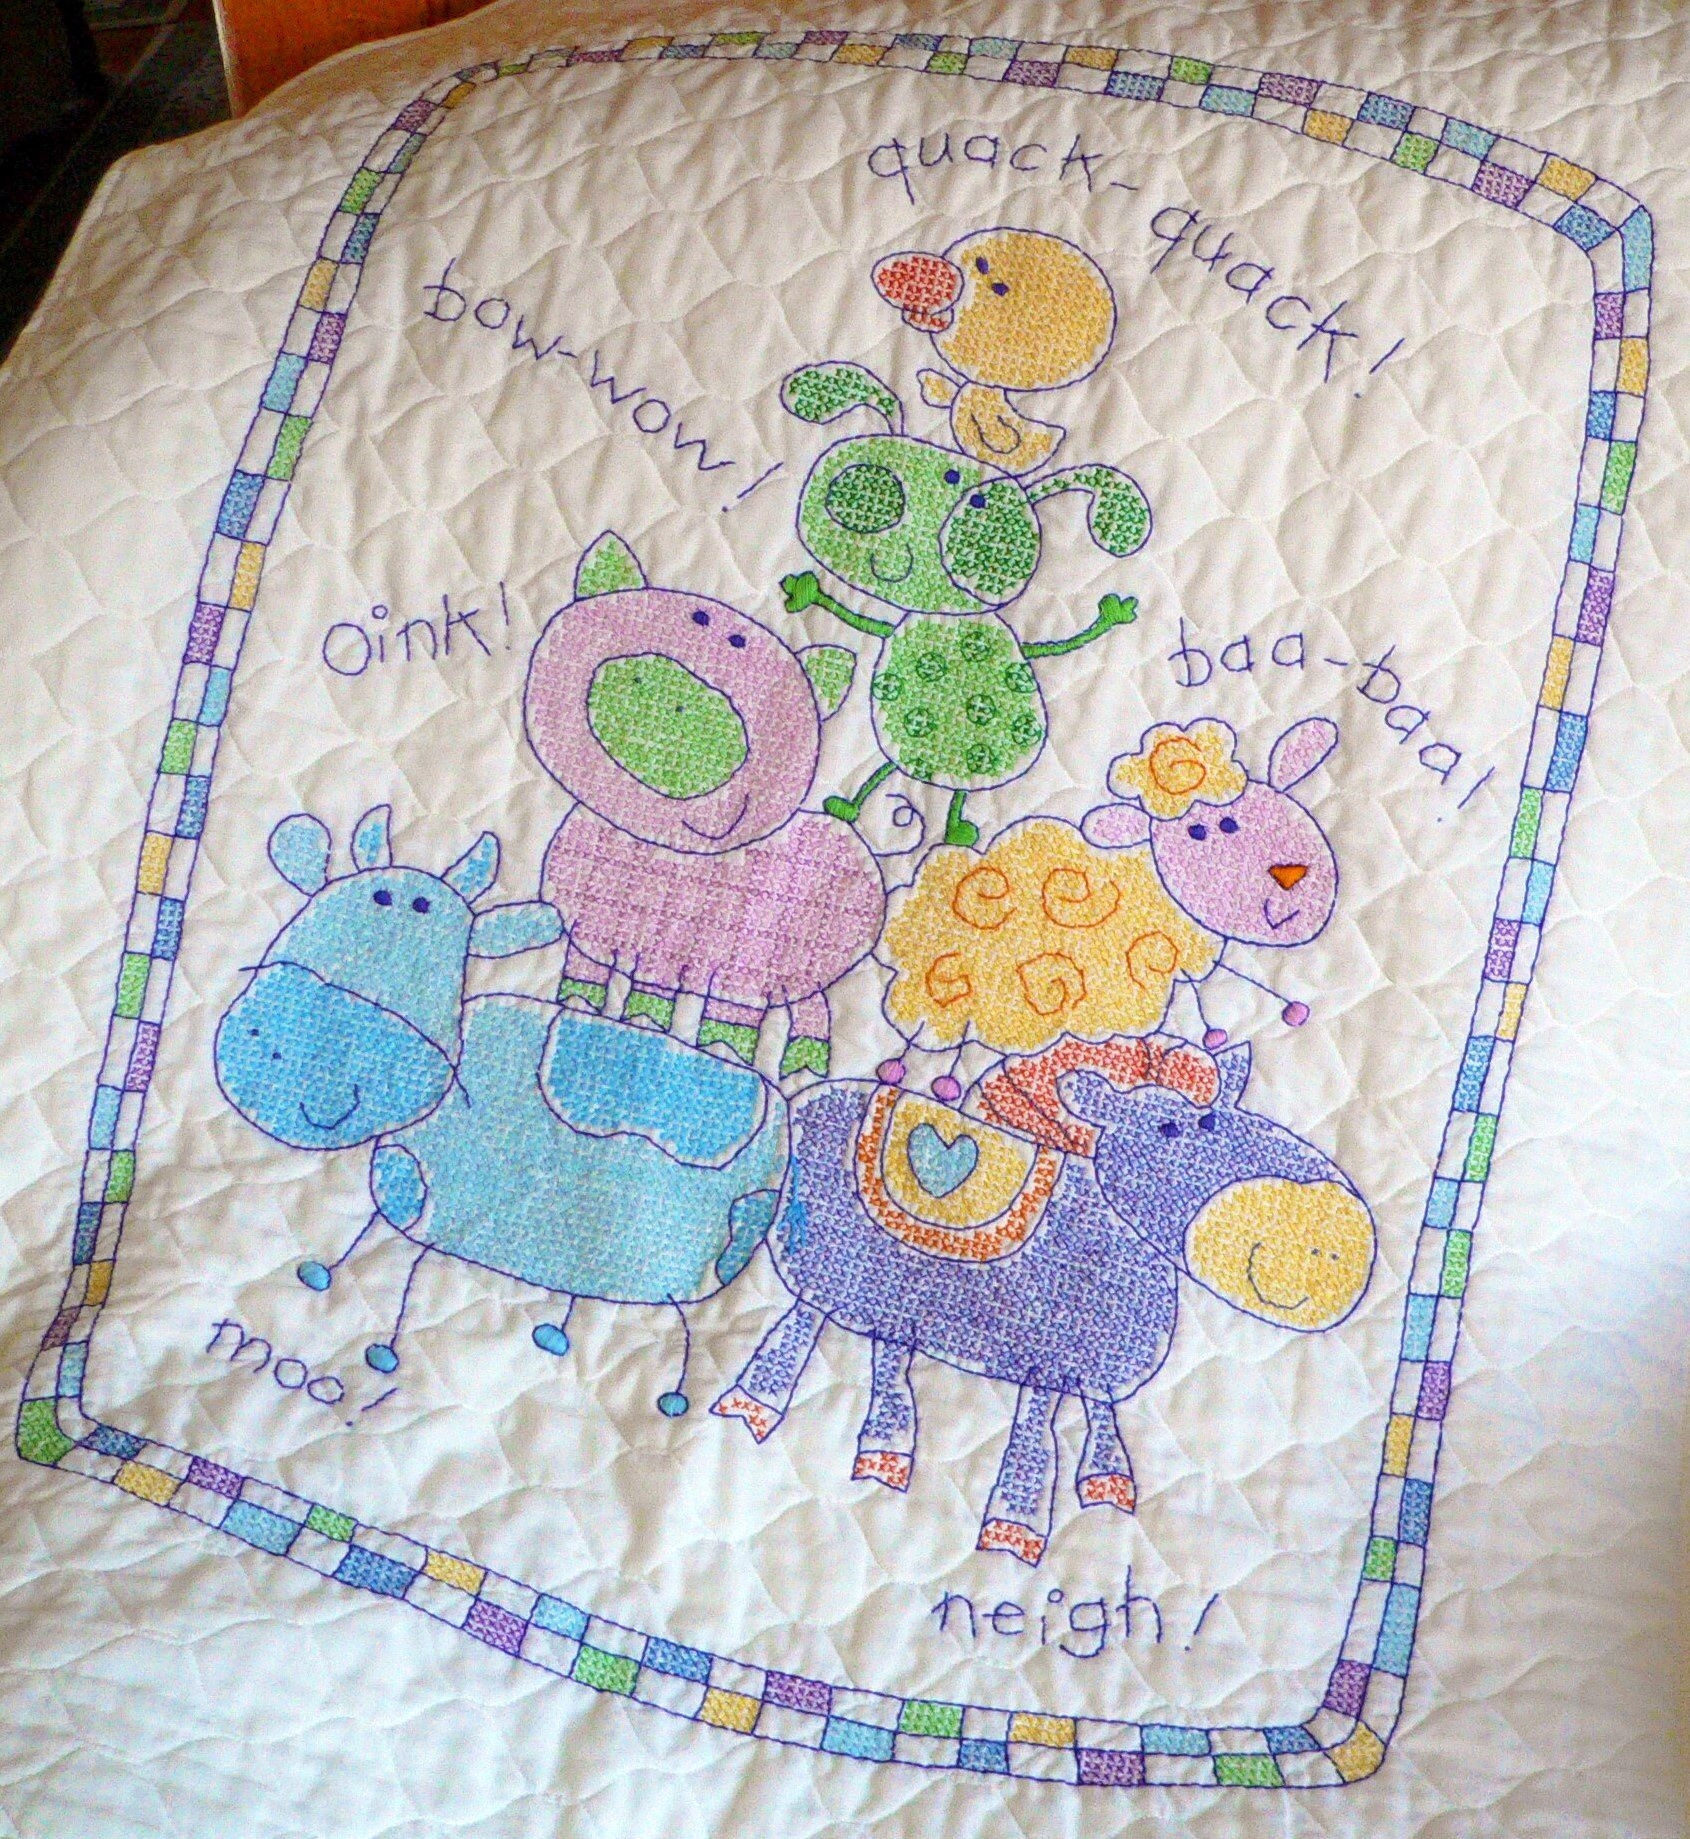 Beautiful Cross Stitch Baby Blanket I Made for My Granddaughter Baby Blanket Kits Of Delightful 48 Pictures Baby Blanket Kits